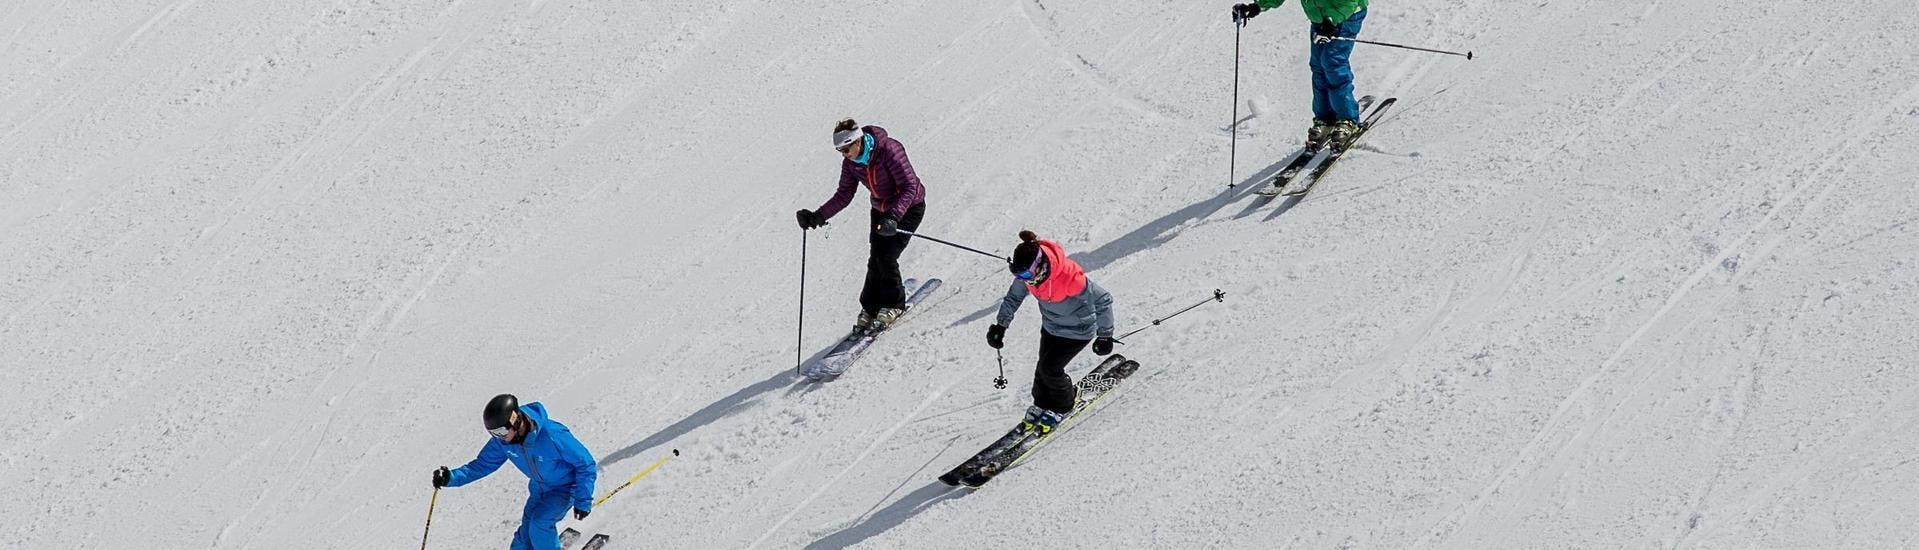 Three skieres are following their ski instructor from the ski school Ski Cool in skiing down a ski slope during one of their Private Ski Lessons for Adults - School Holiday - All Levels in the ski resort of Val Thorens.